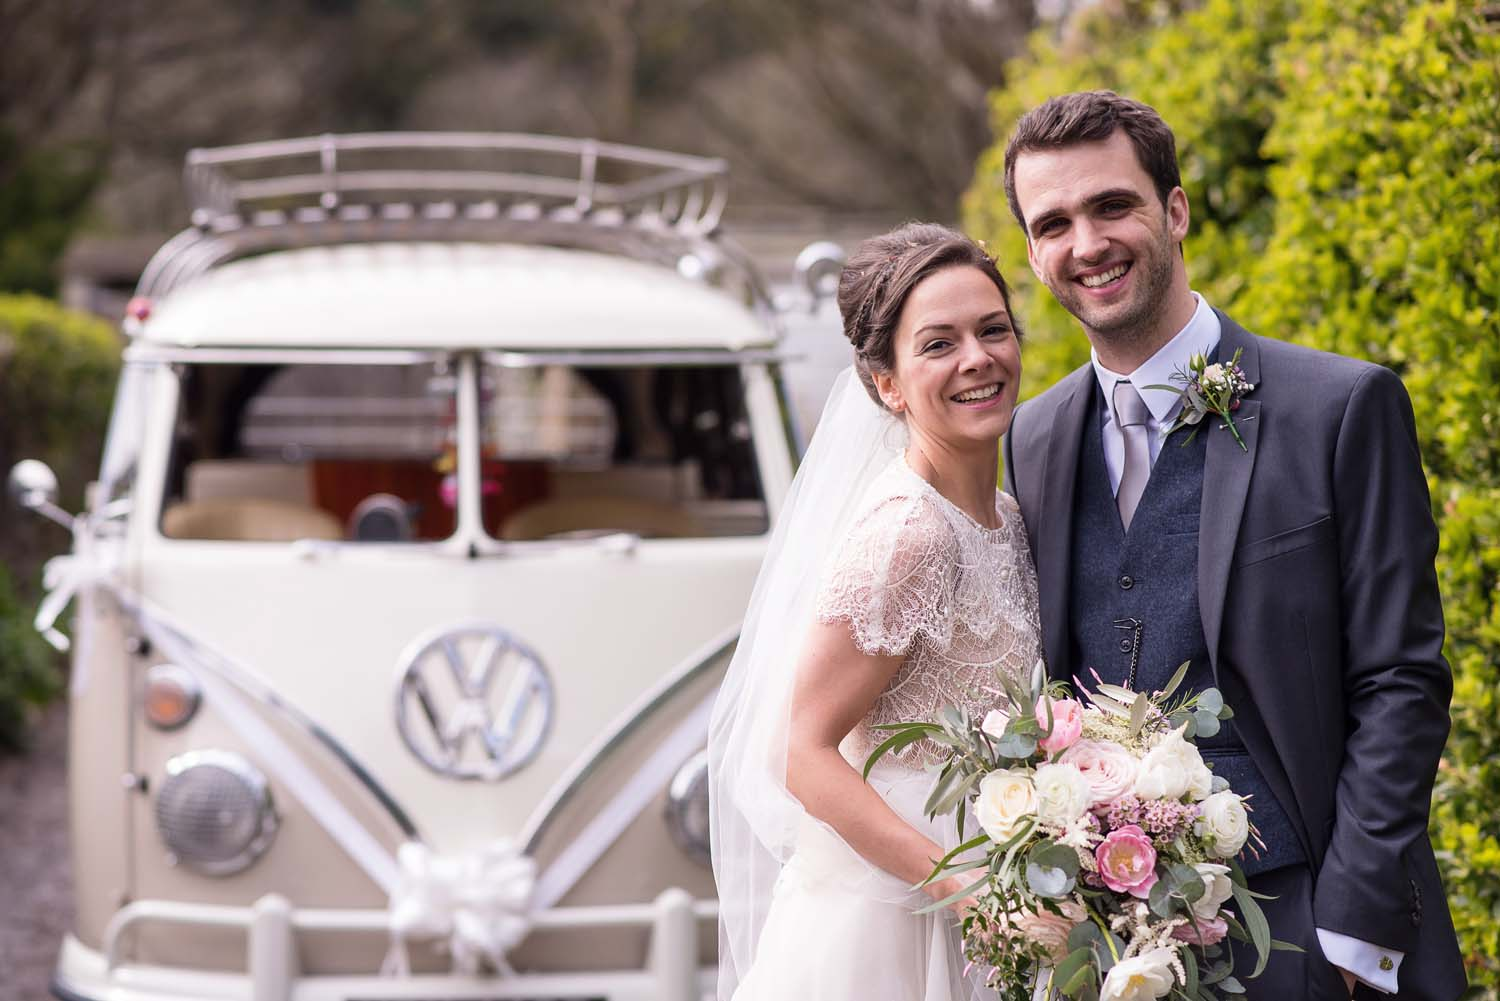 pangdean barn camper van fun wedding